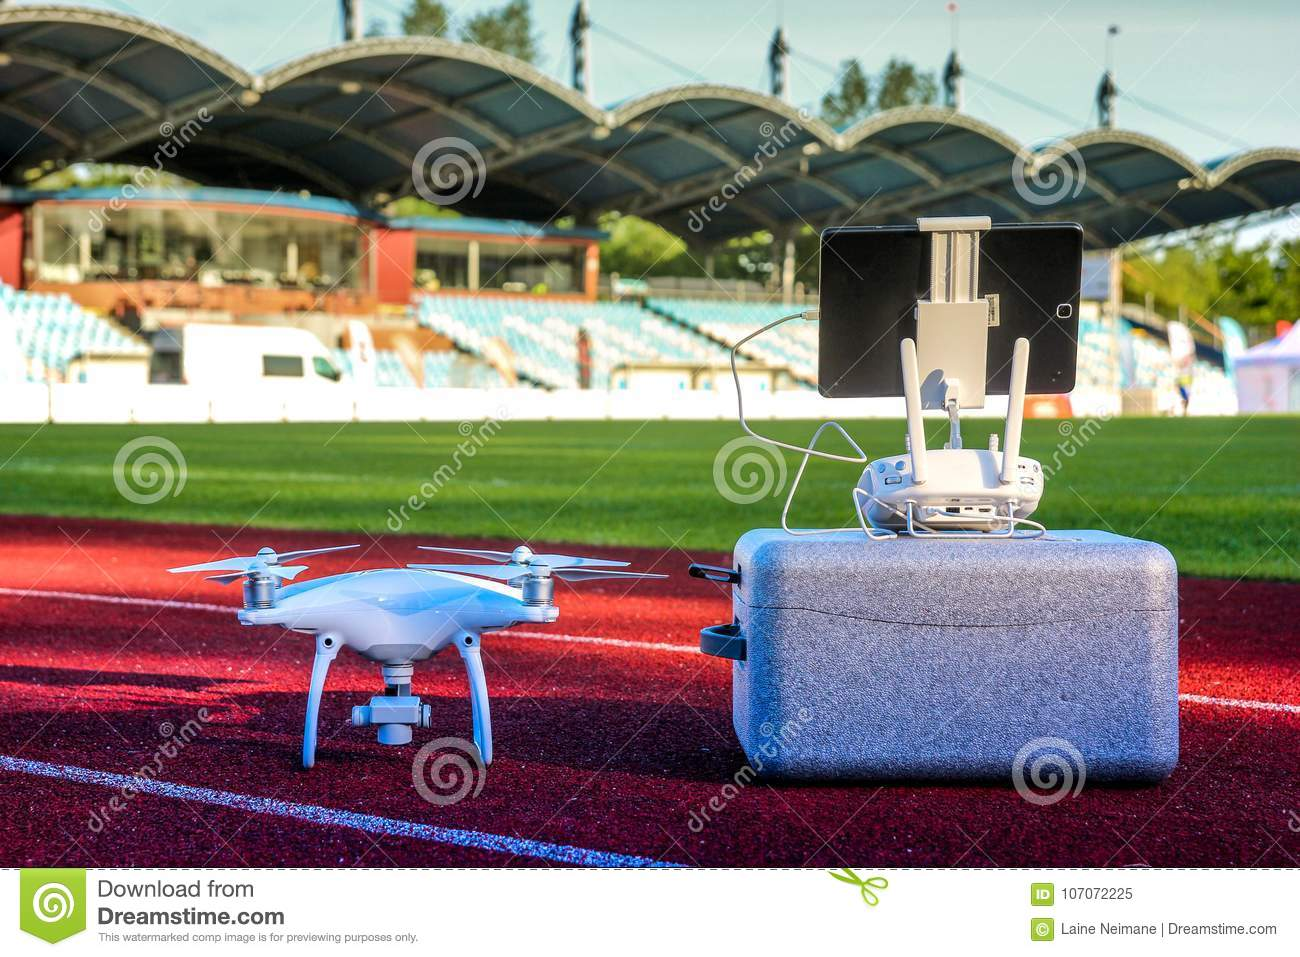 White quadcopter with four motors and propellers standing in large stadium